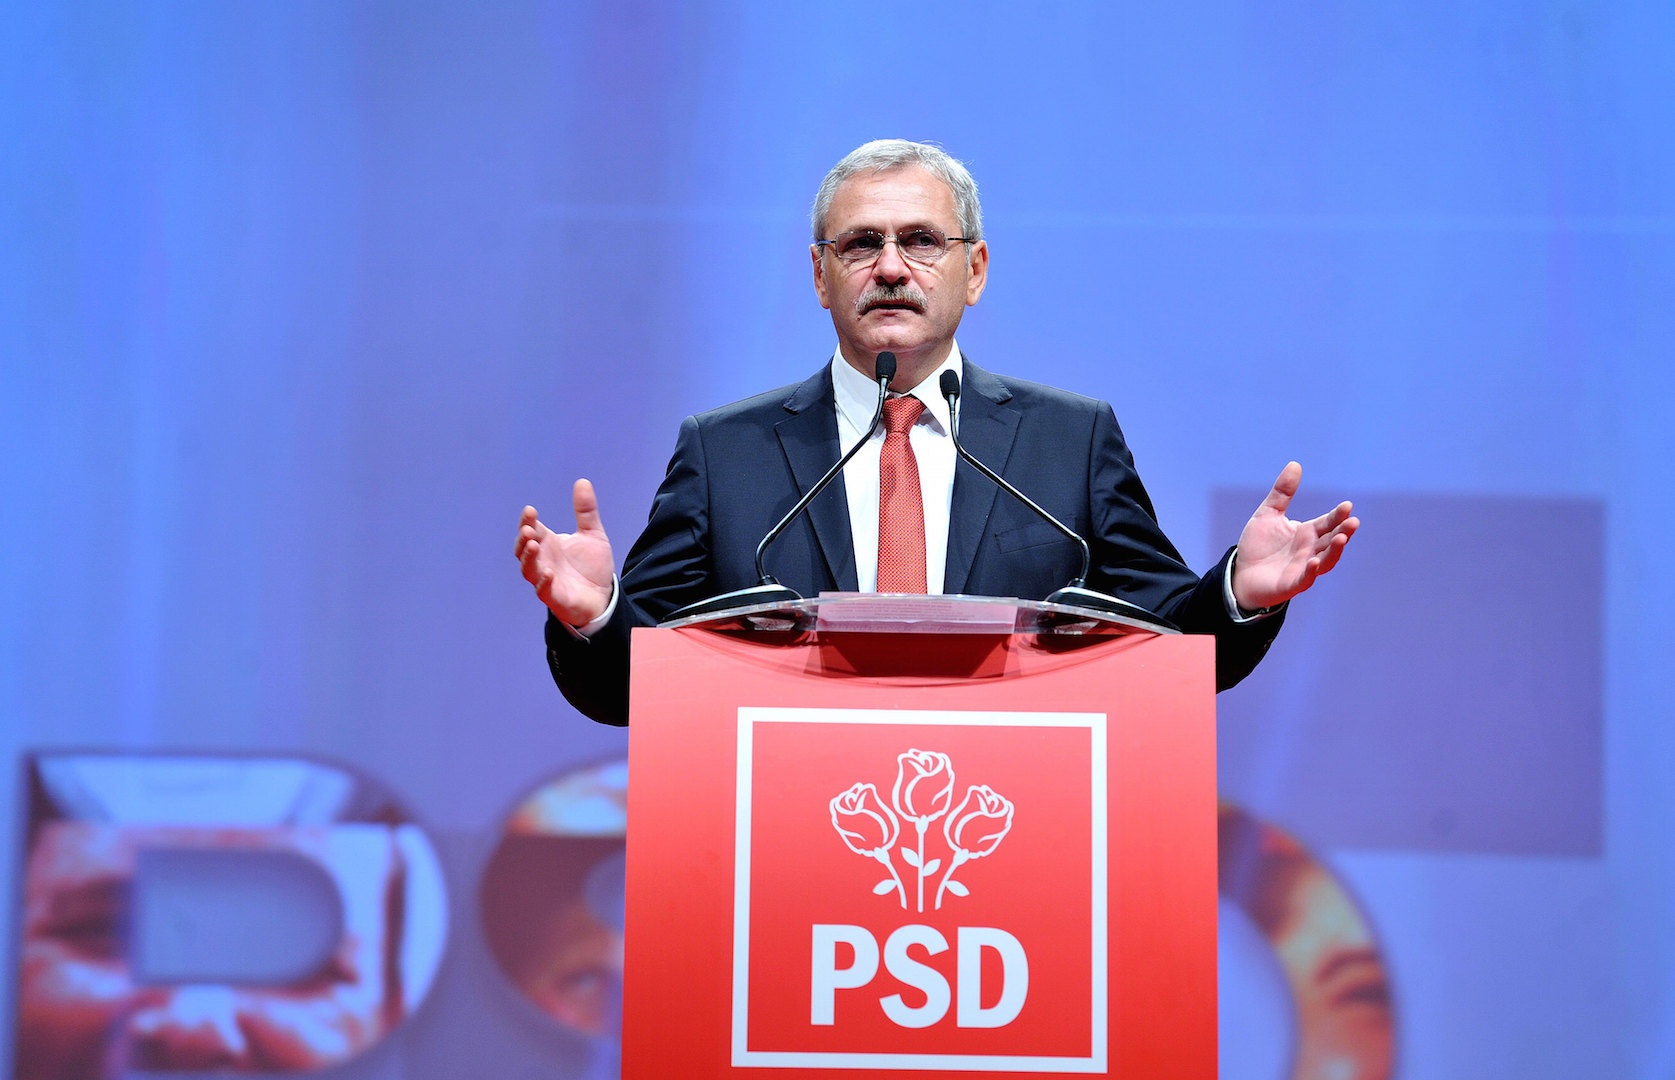 Romania's PSD head insists on suspension of the country's president